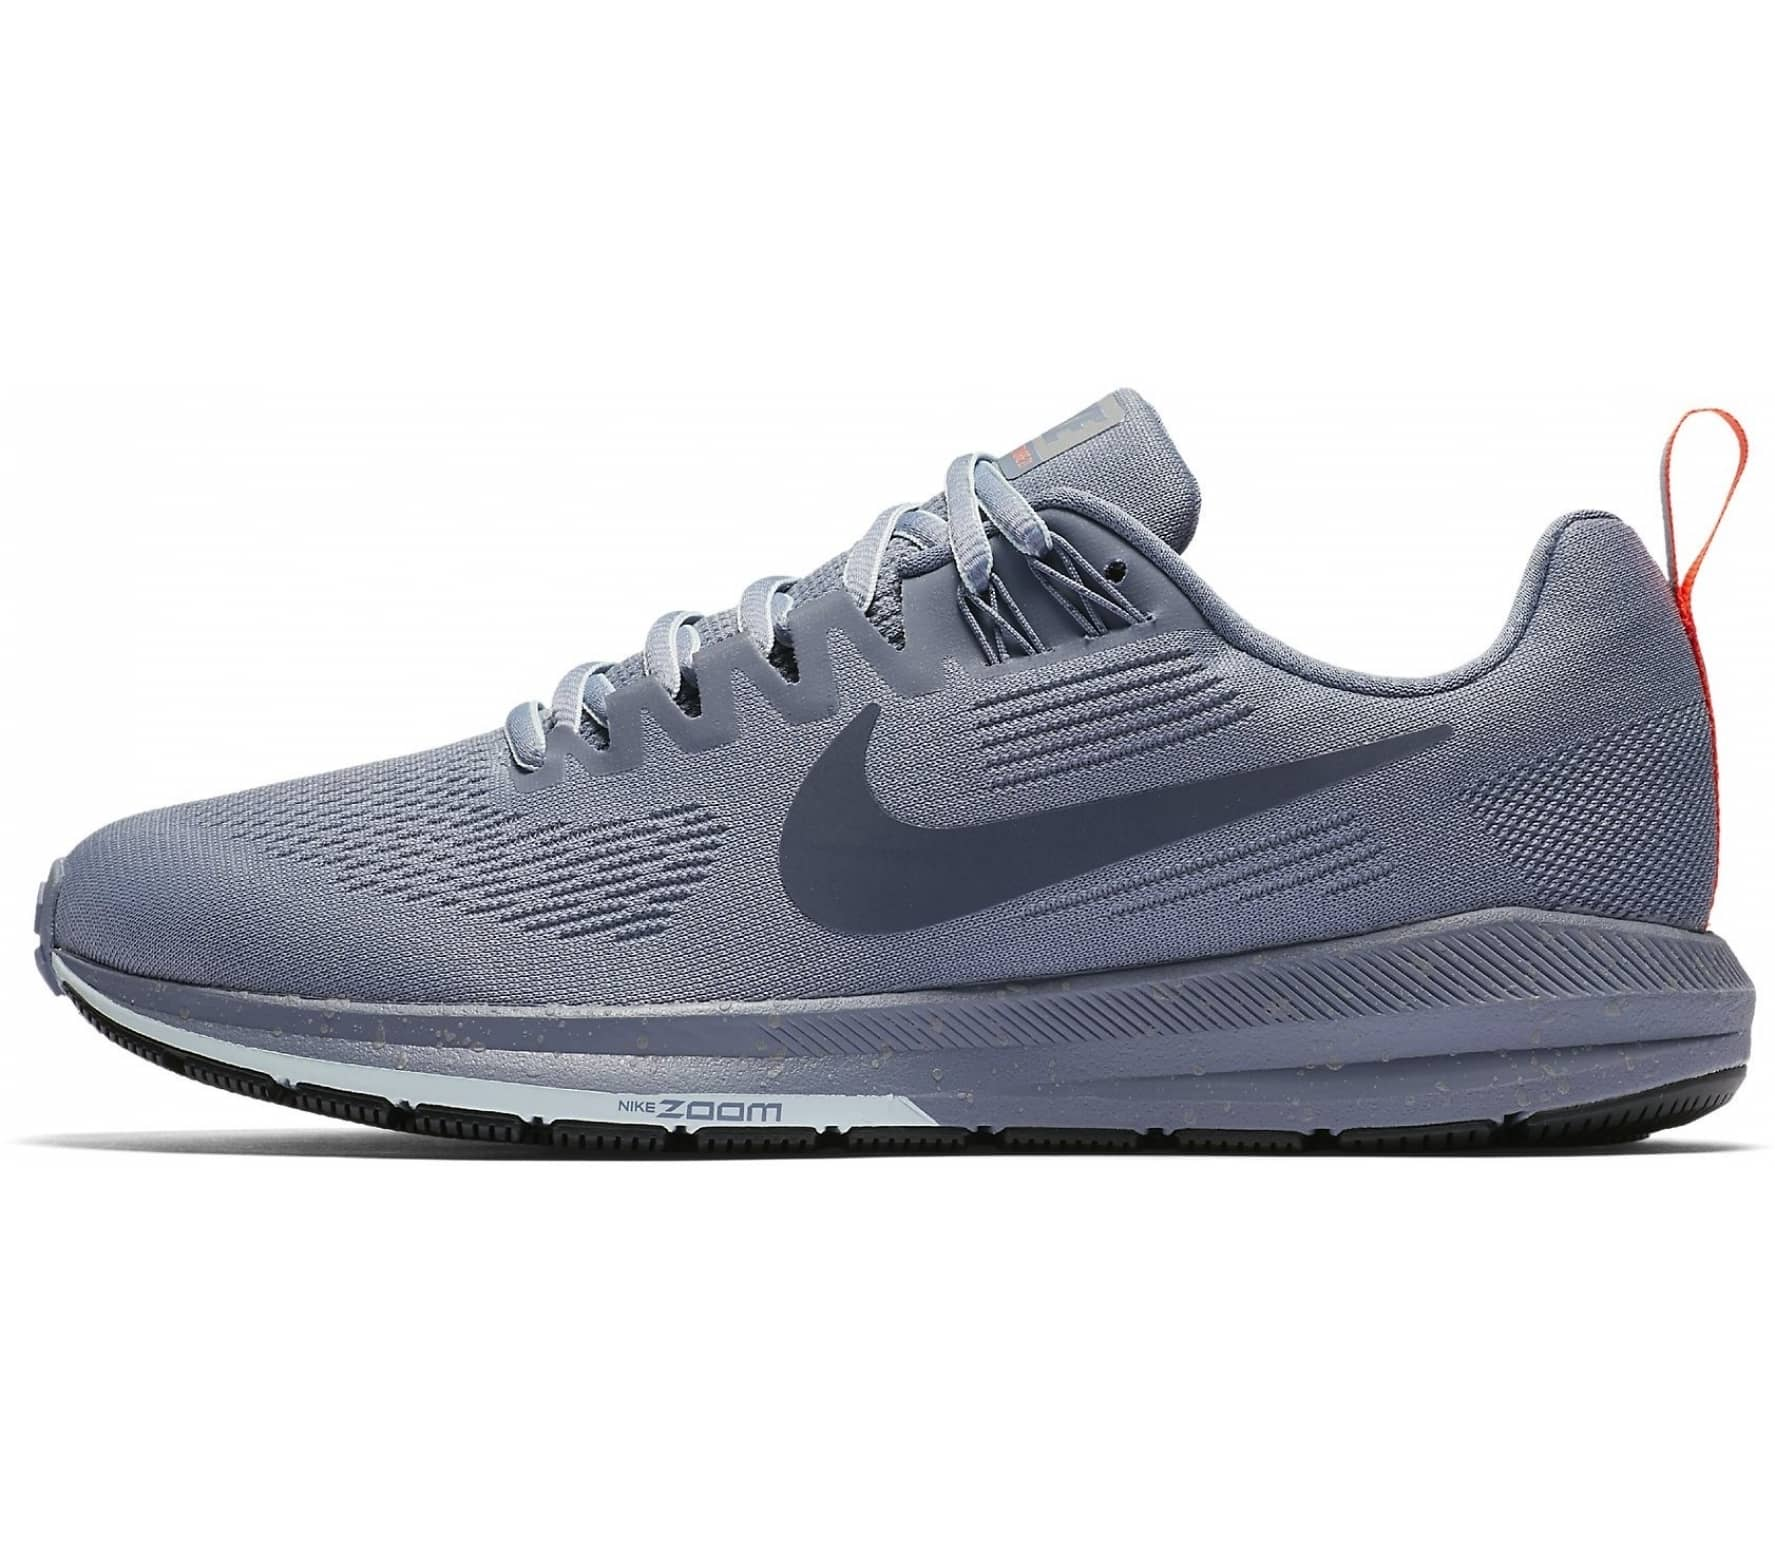 separation shoes 0dc06 dc370 Nike - Air Zoom Structure 21 Shield women s running shoes (blue grey)